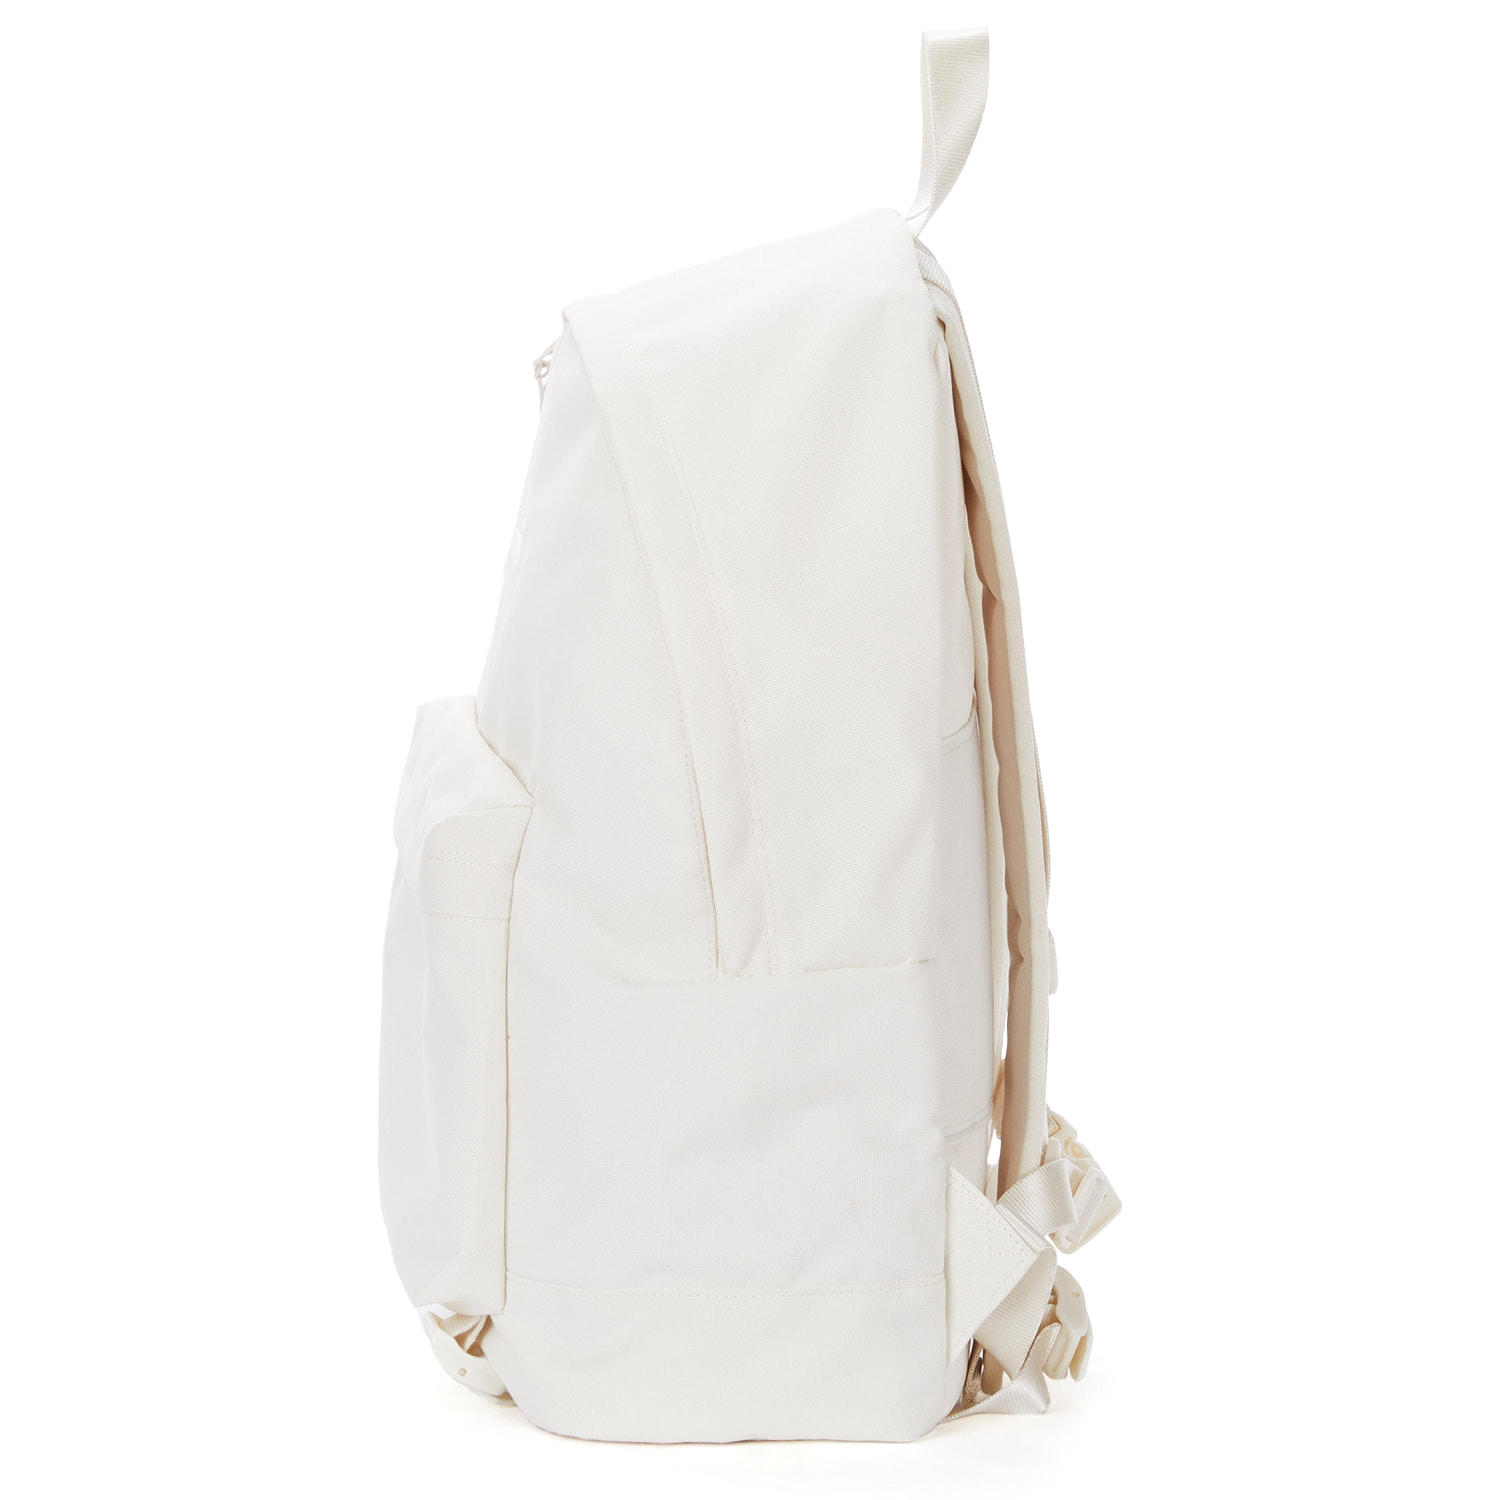 COMPACT DAYPACK / IVORY